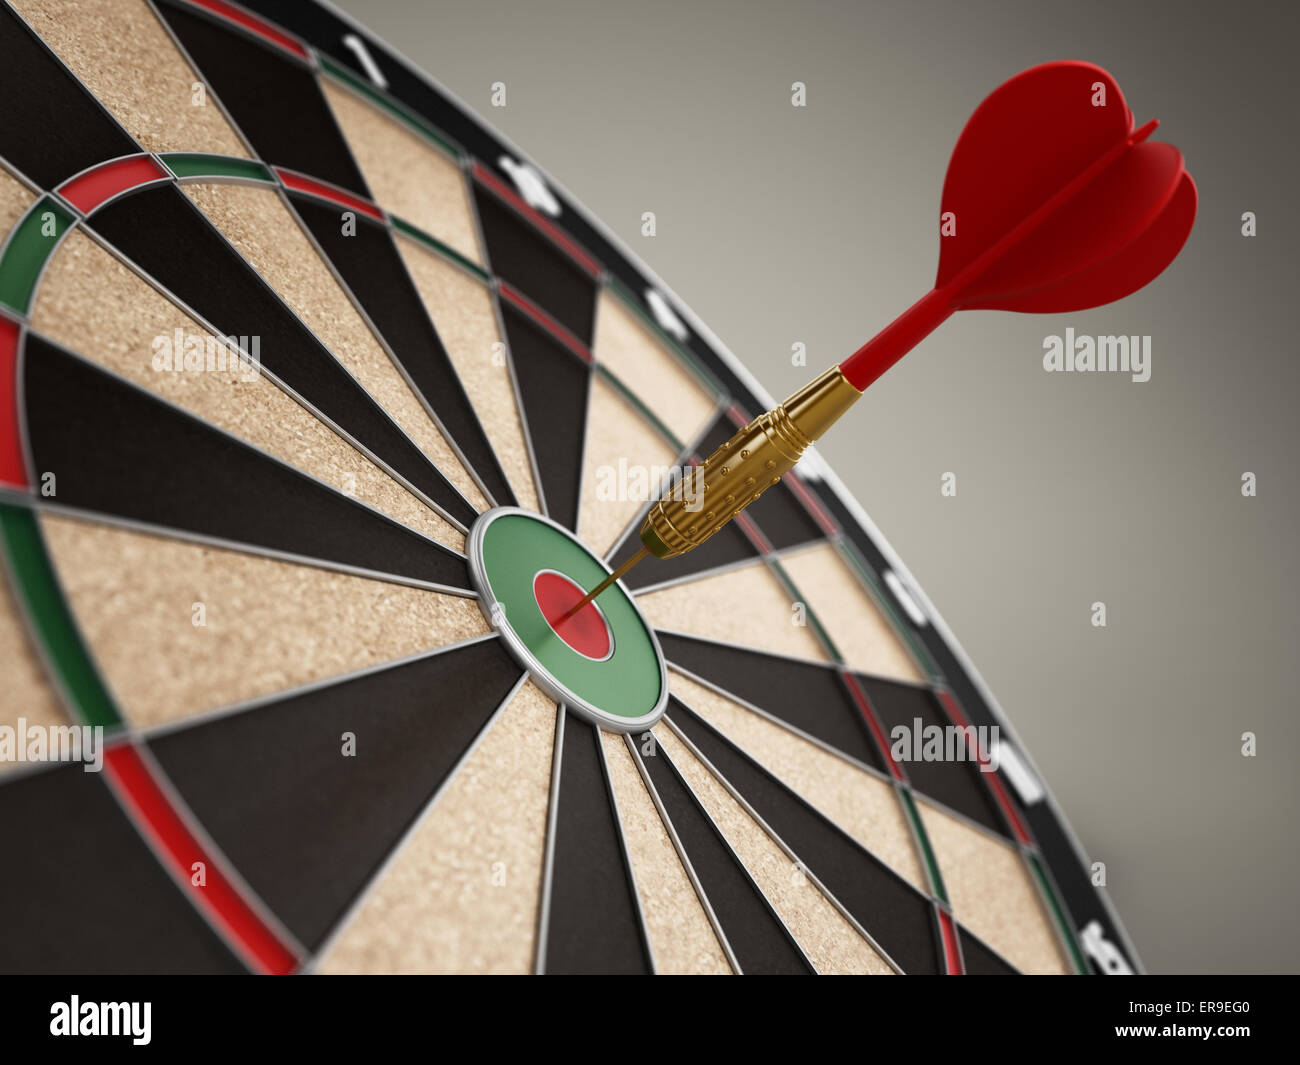 Red dart hit right at the center of the target - Stock Image